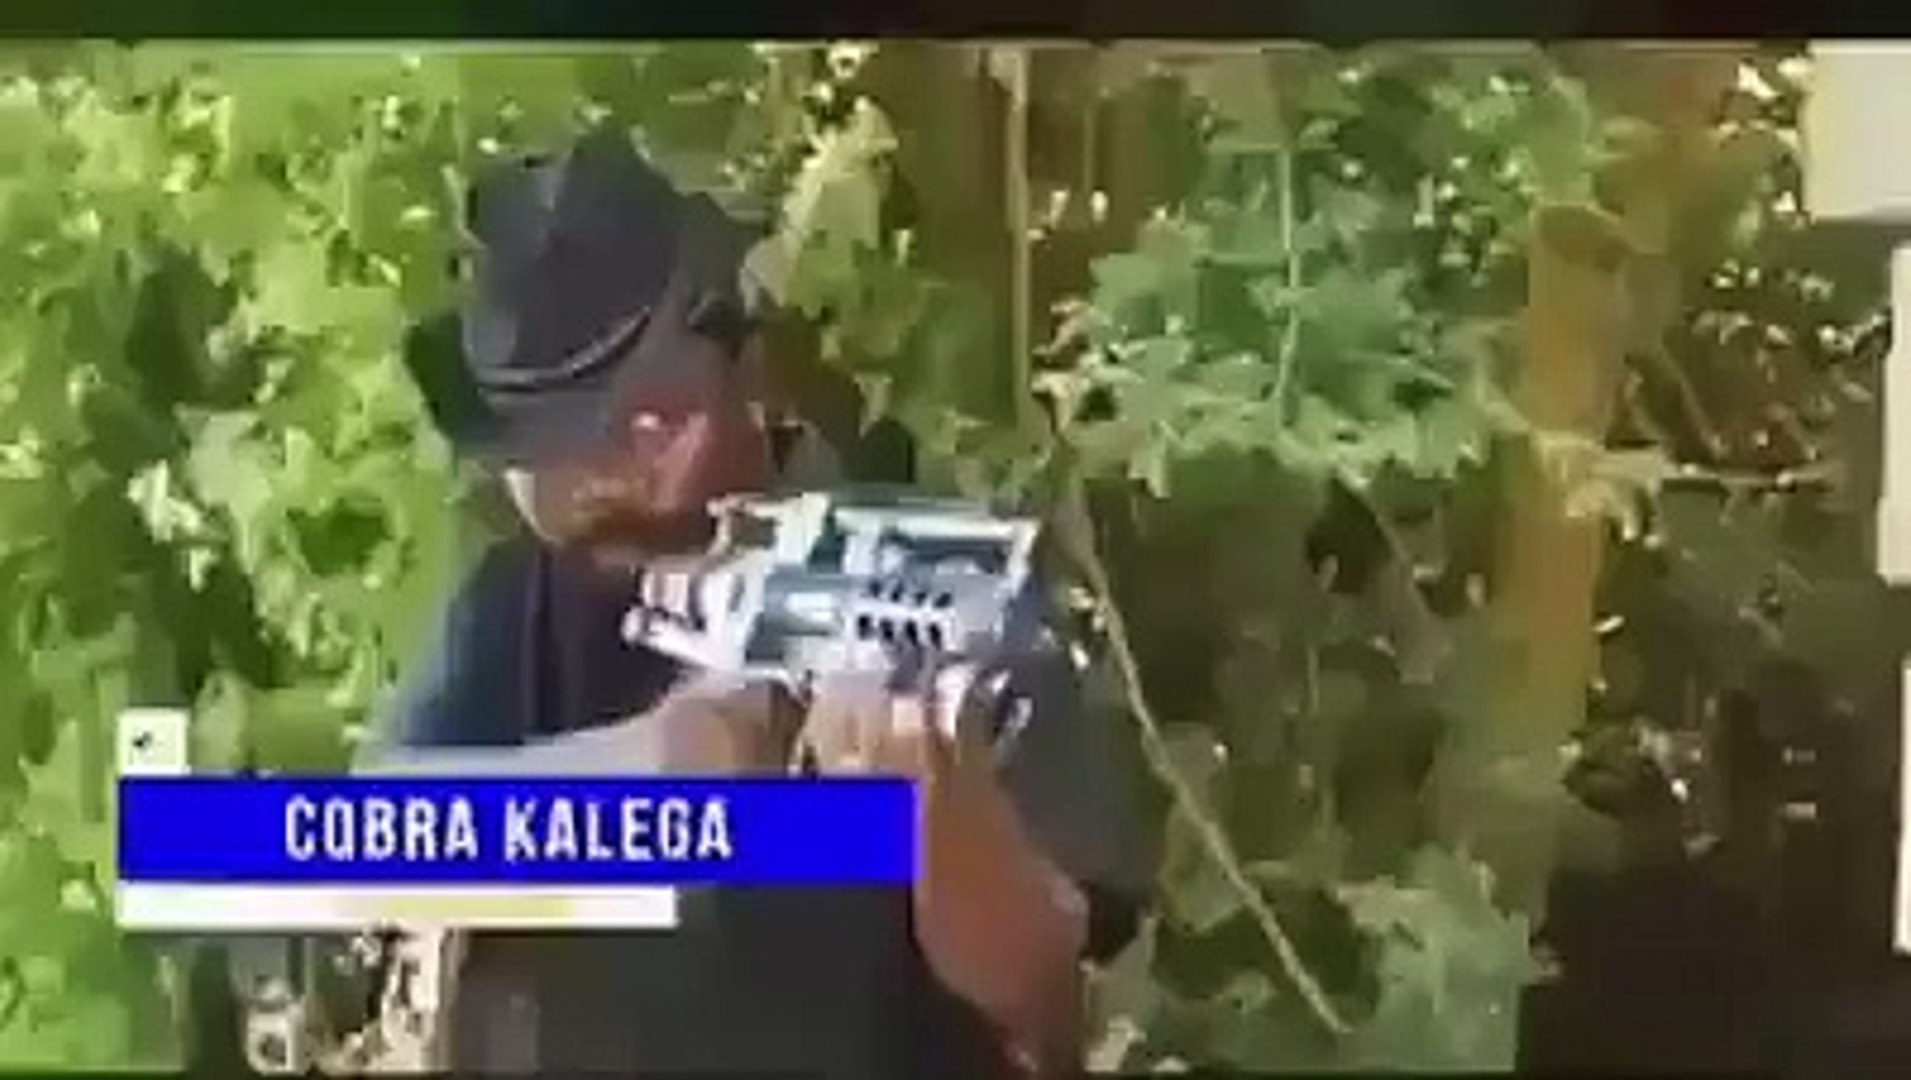 Could this be Nollywood or firewood?